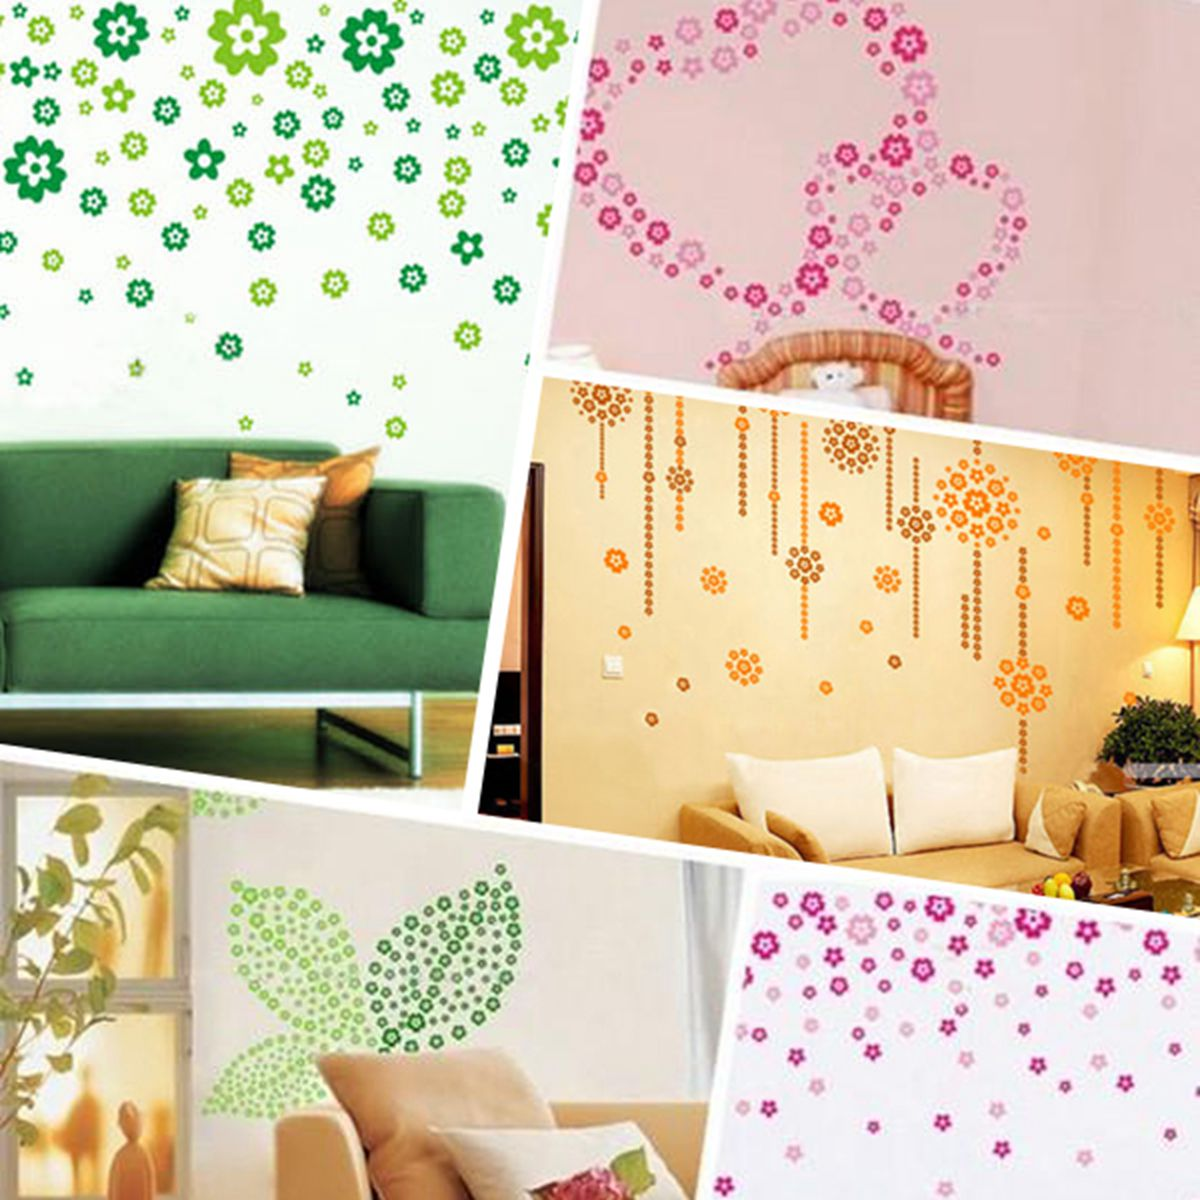 PVC Removable Flower Butterfly Wall Stickers Water Proof Art Wall ...